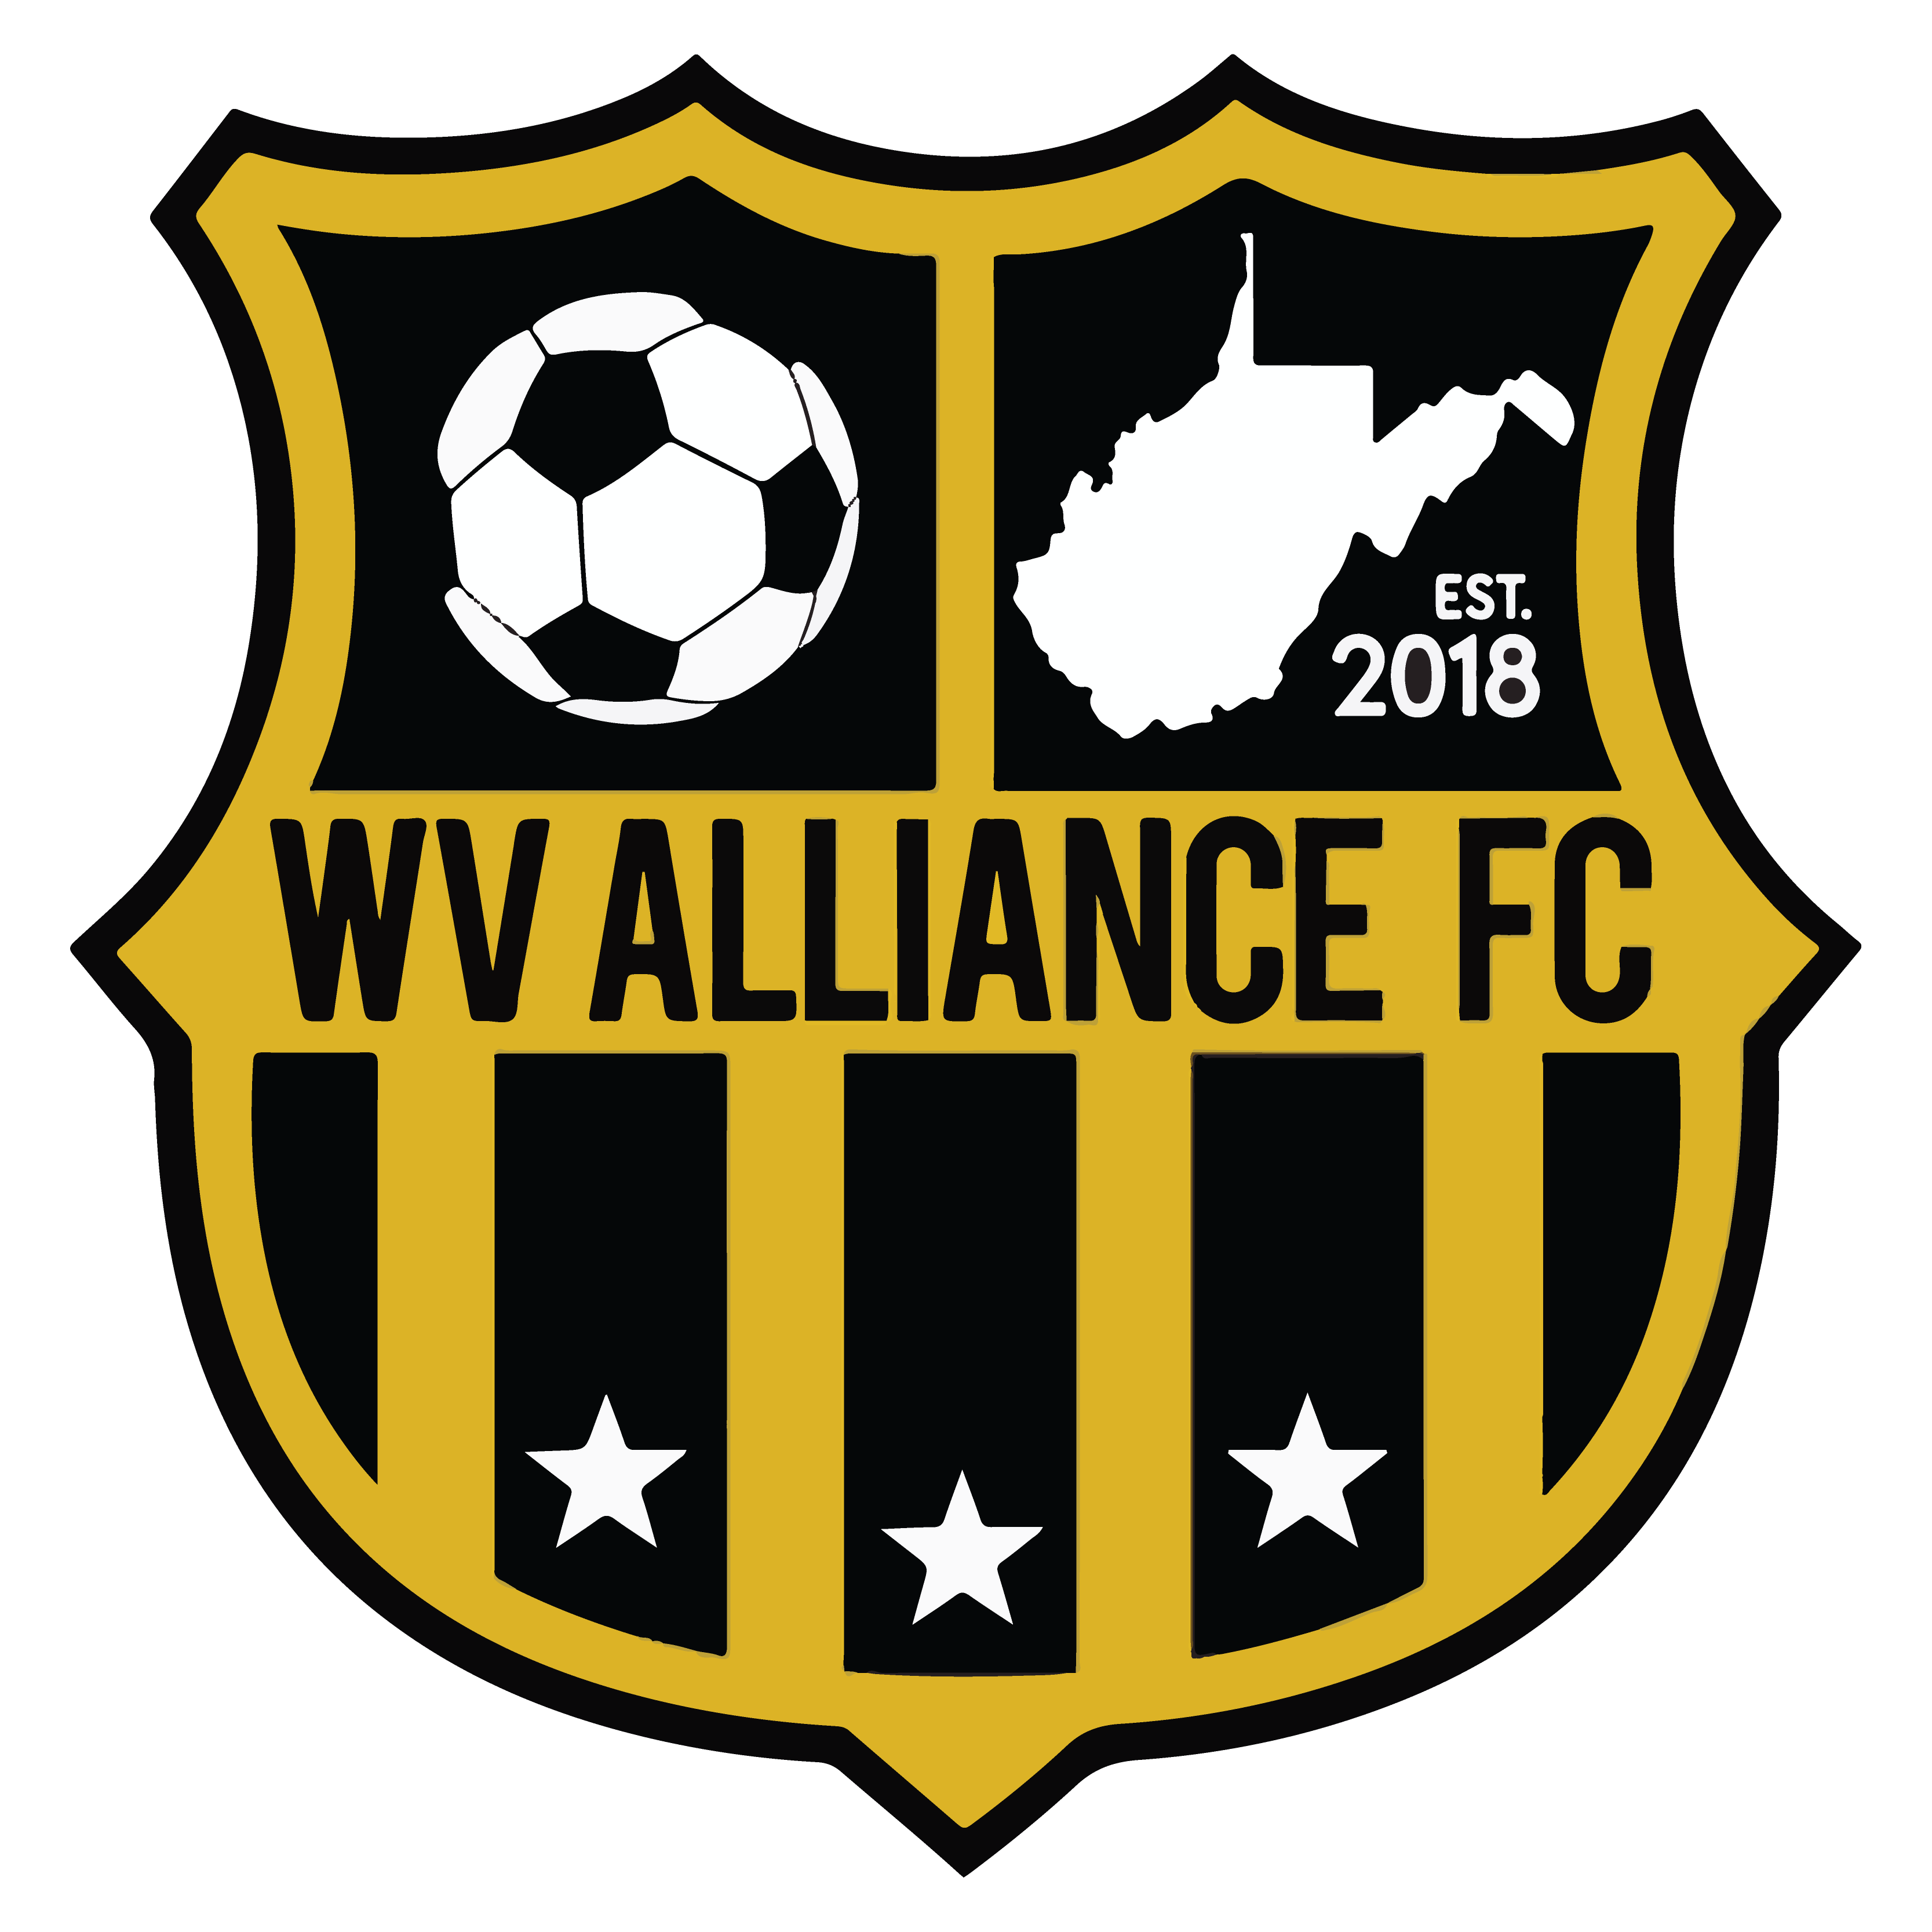 West Virginia Alliance FC